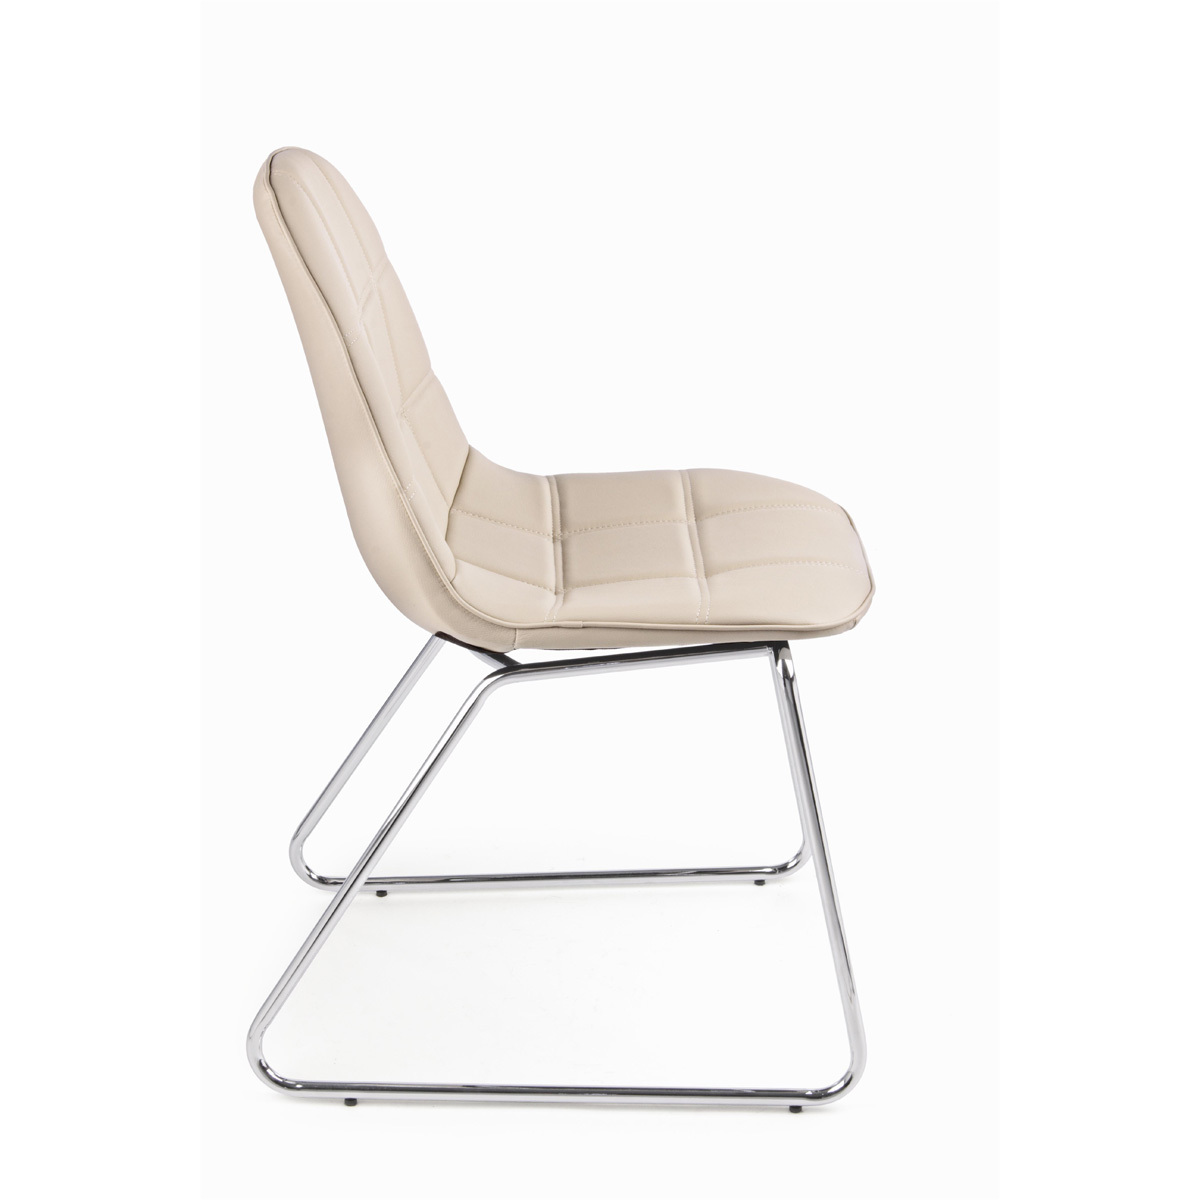 Photos 2: Bizzotto Chair in metal and eco-leather - tortora 0731665